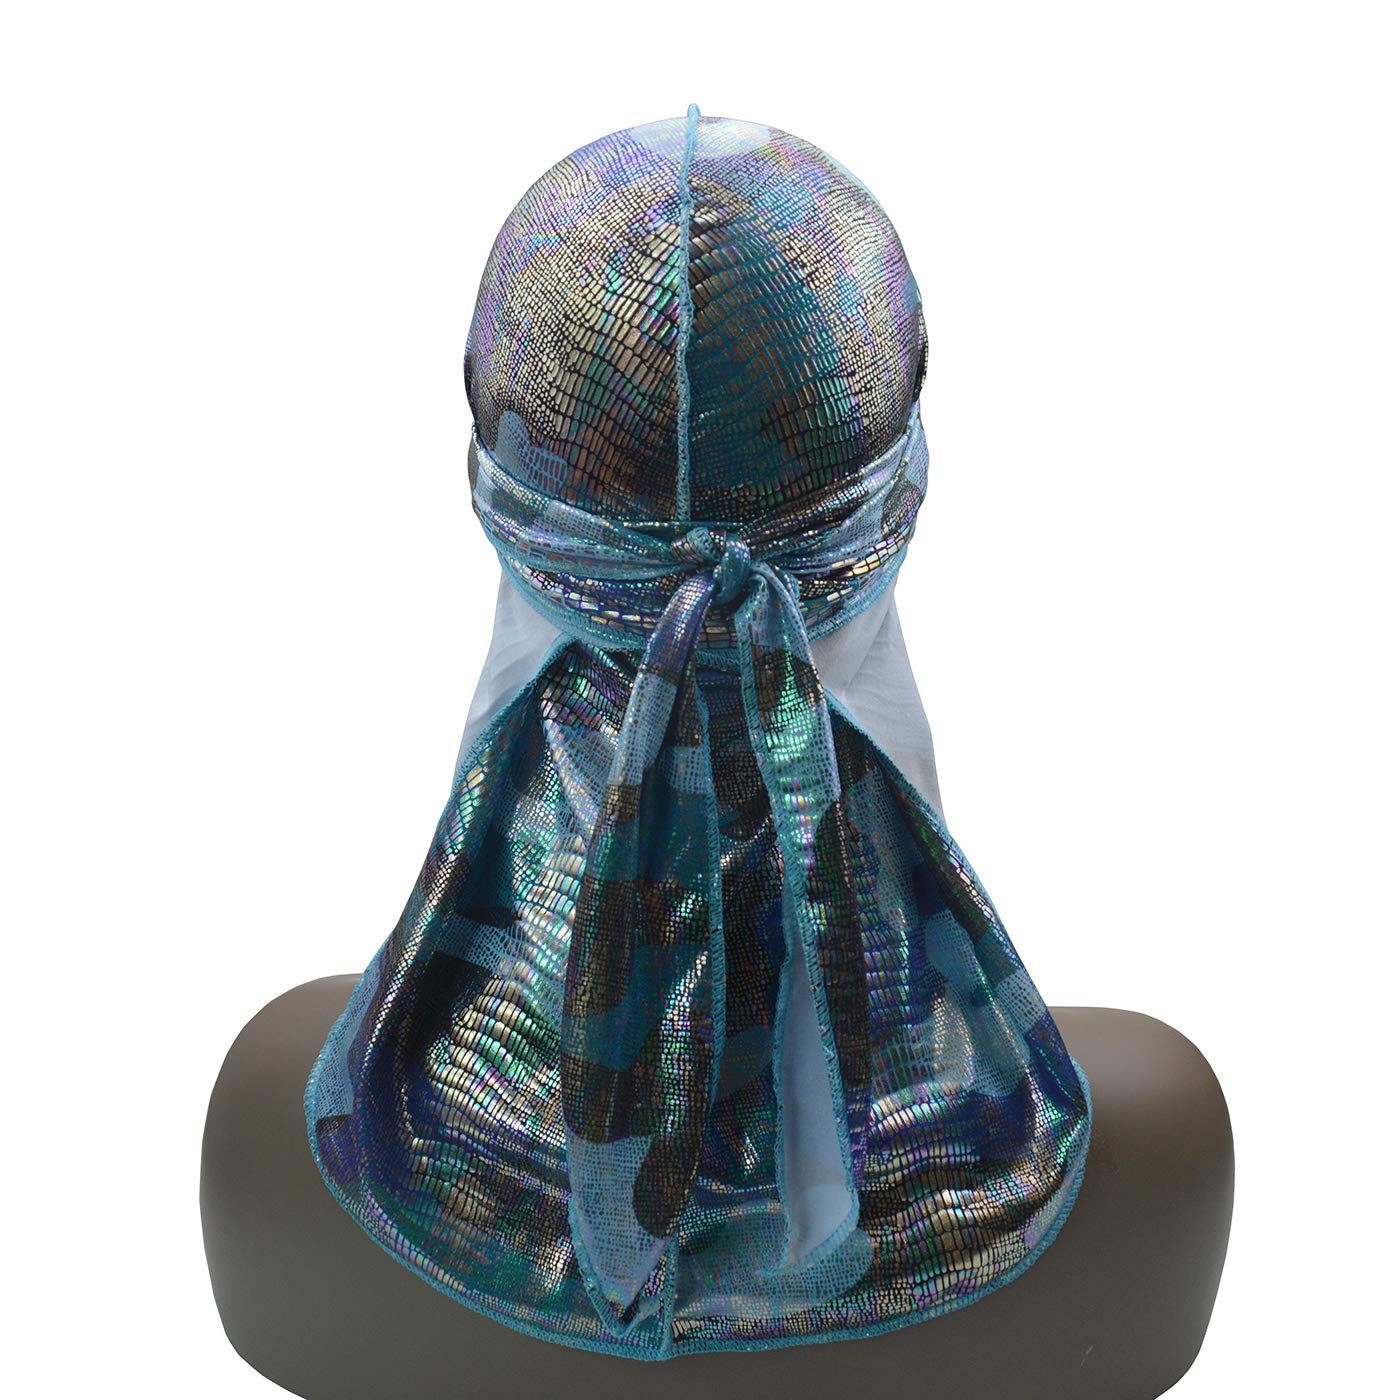 ASHILISIA Fashionable Silky Durag Headwraps with Extra Long Tail and Wide Straps for 360 Waves